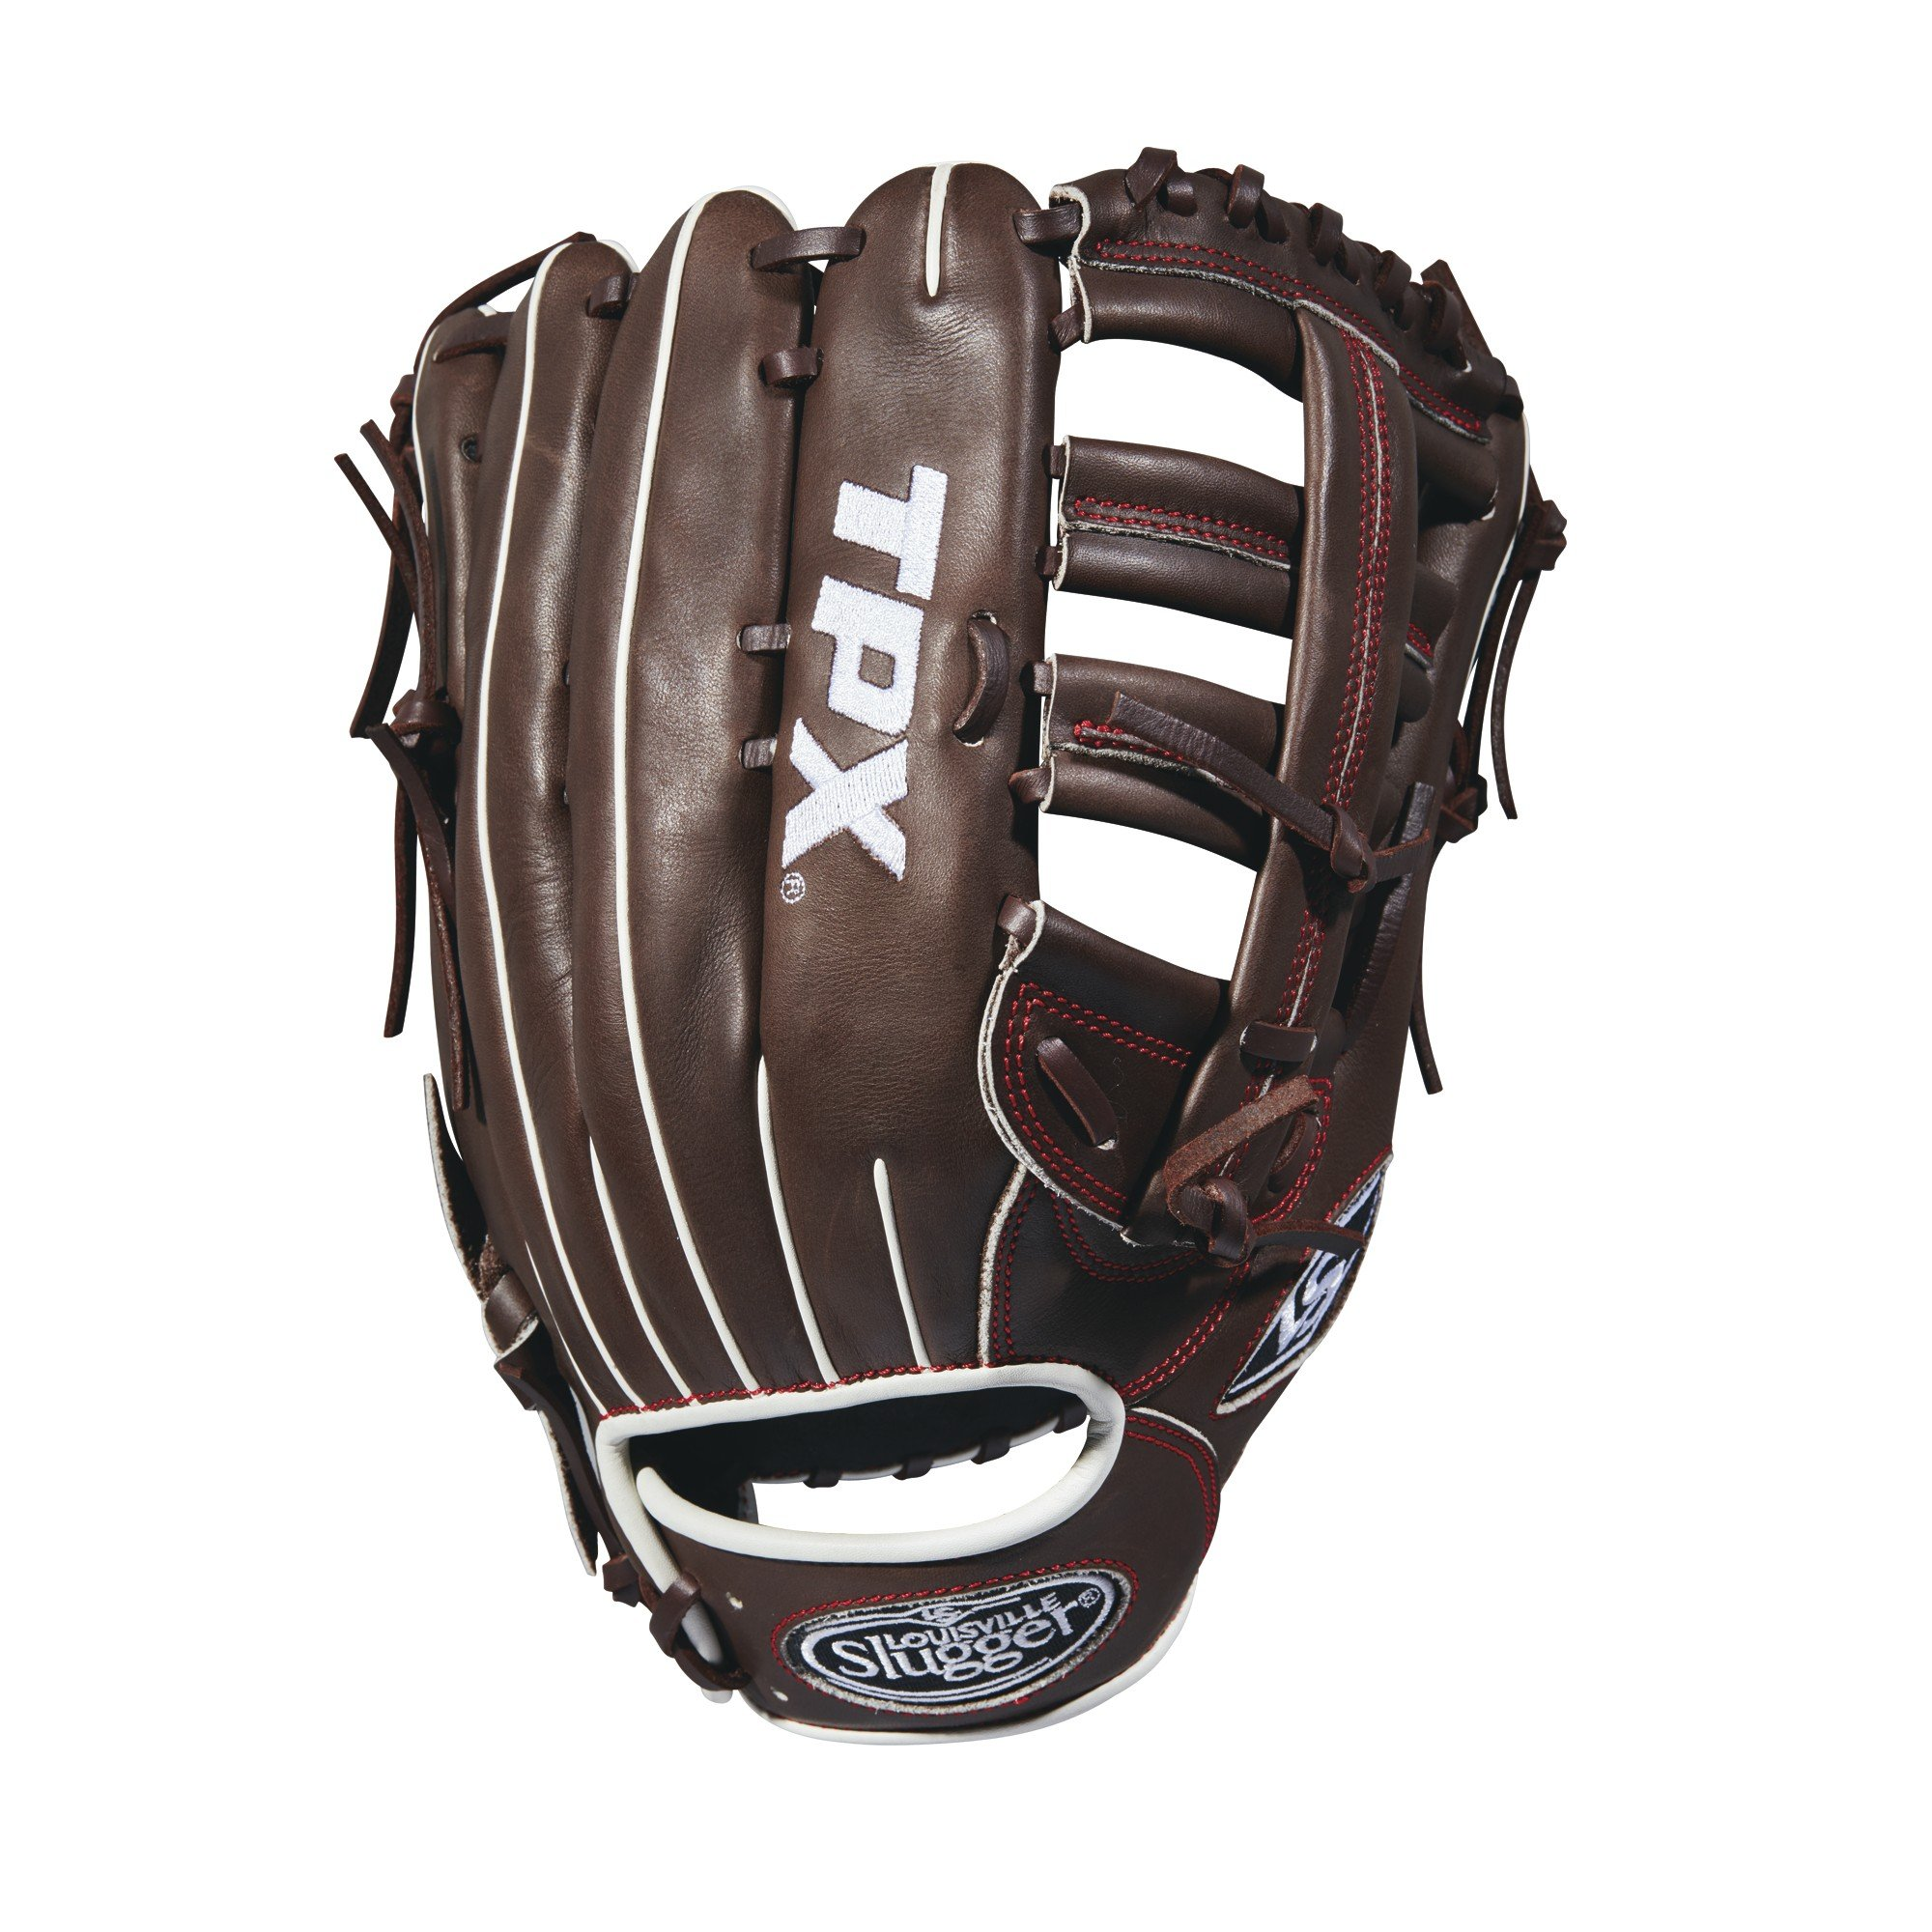 Louisville Slugger 2018 Tpx Outfield Baseball Glove - Left Hand Throw Dark Brown/Red, 12.75'' by Louisville Slugger